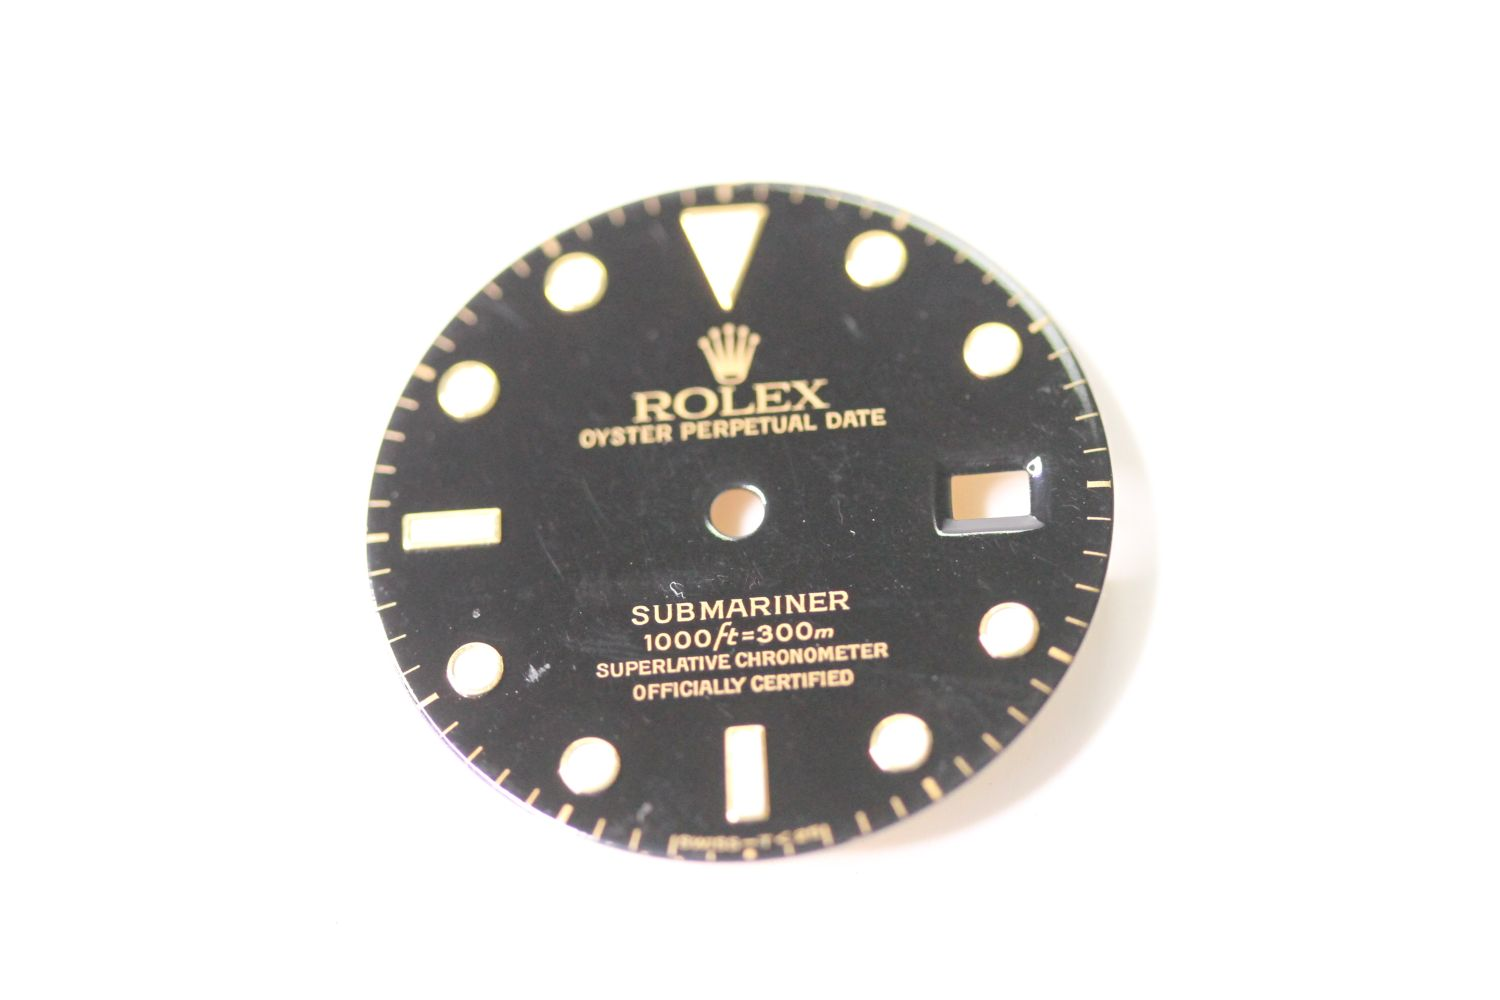 ROLEX SUBMARINER DATE STEEL AND GOLD DIAL, circular gloss black dial with gold applied hour markers,